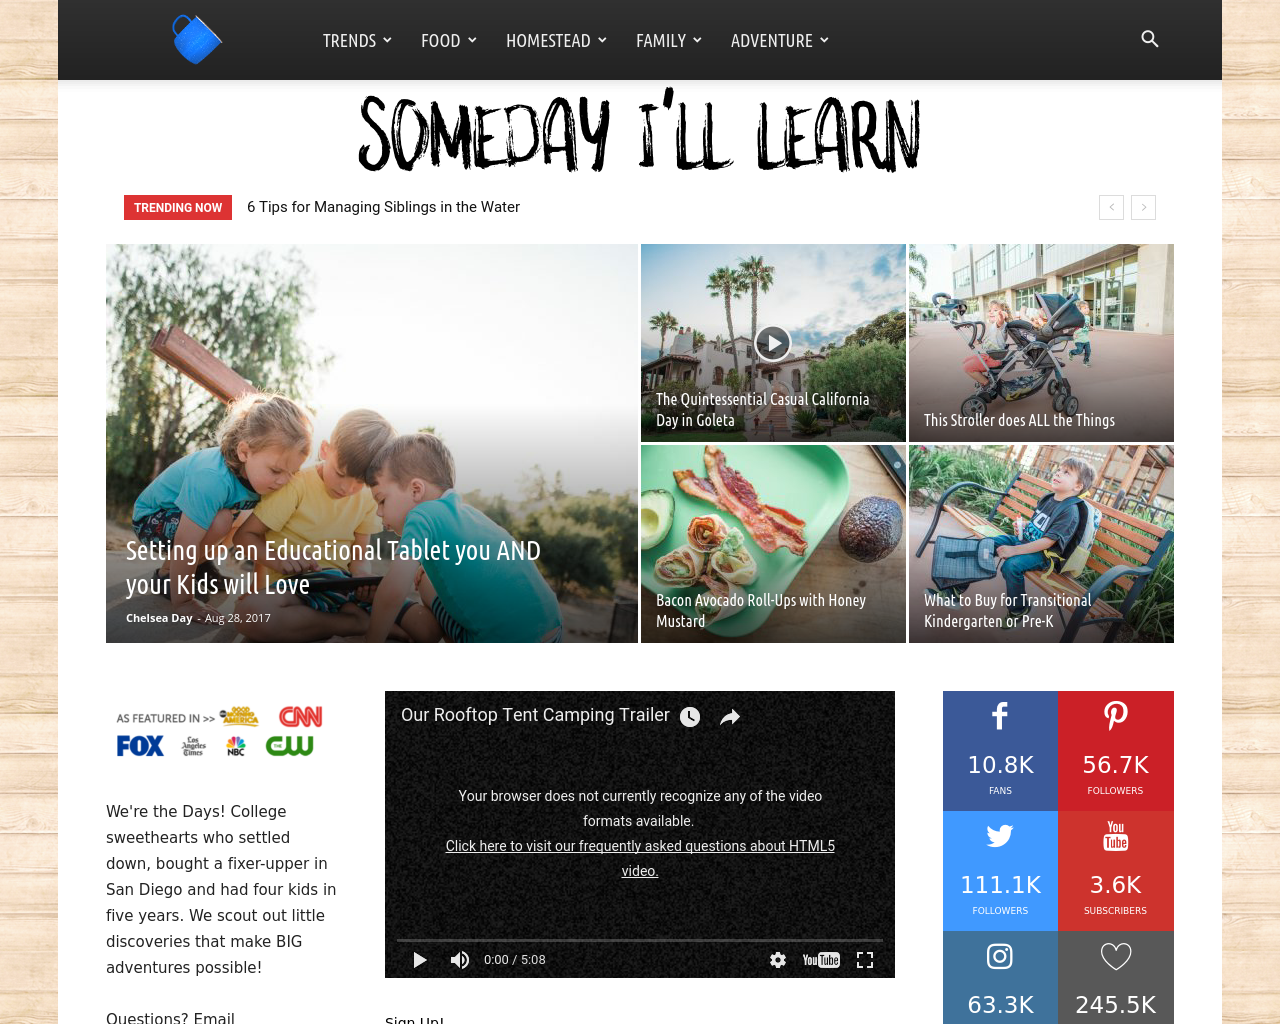 Someday-I'll-Learn-Advertising-Reviews-Pricing